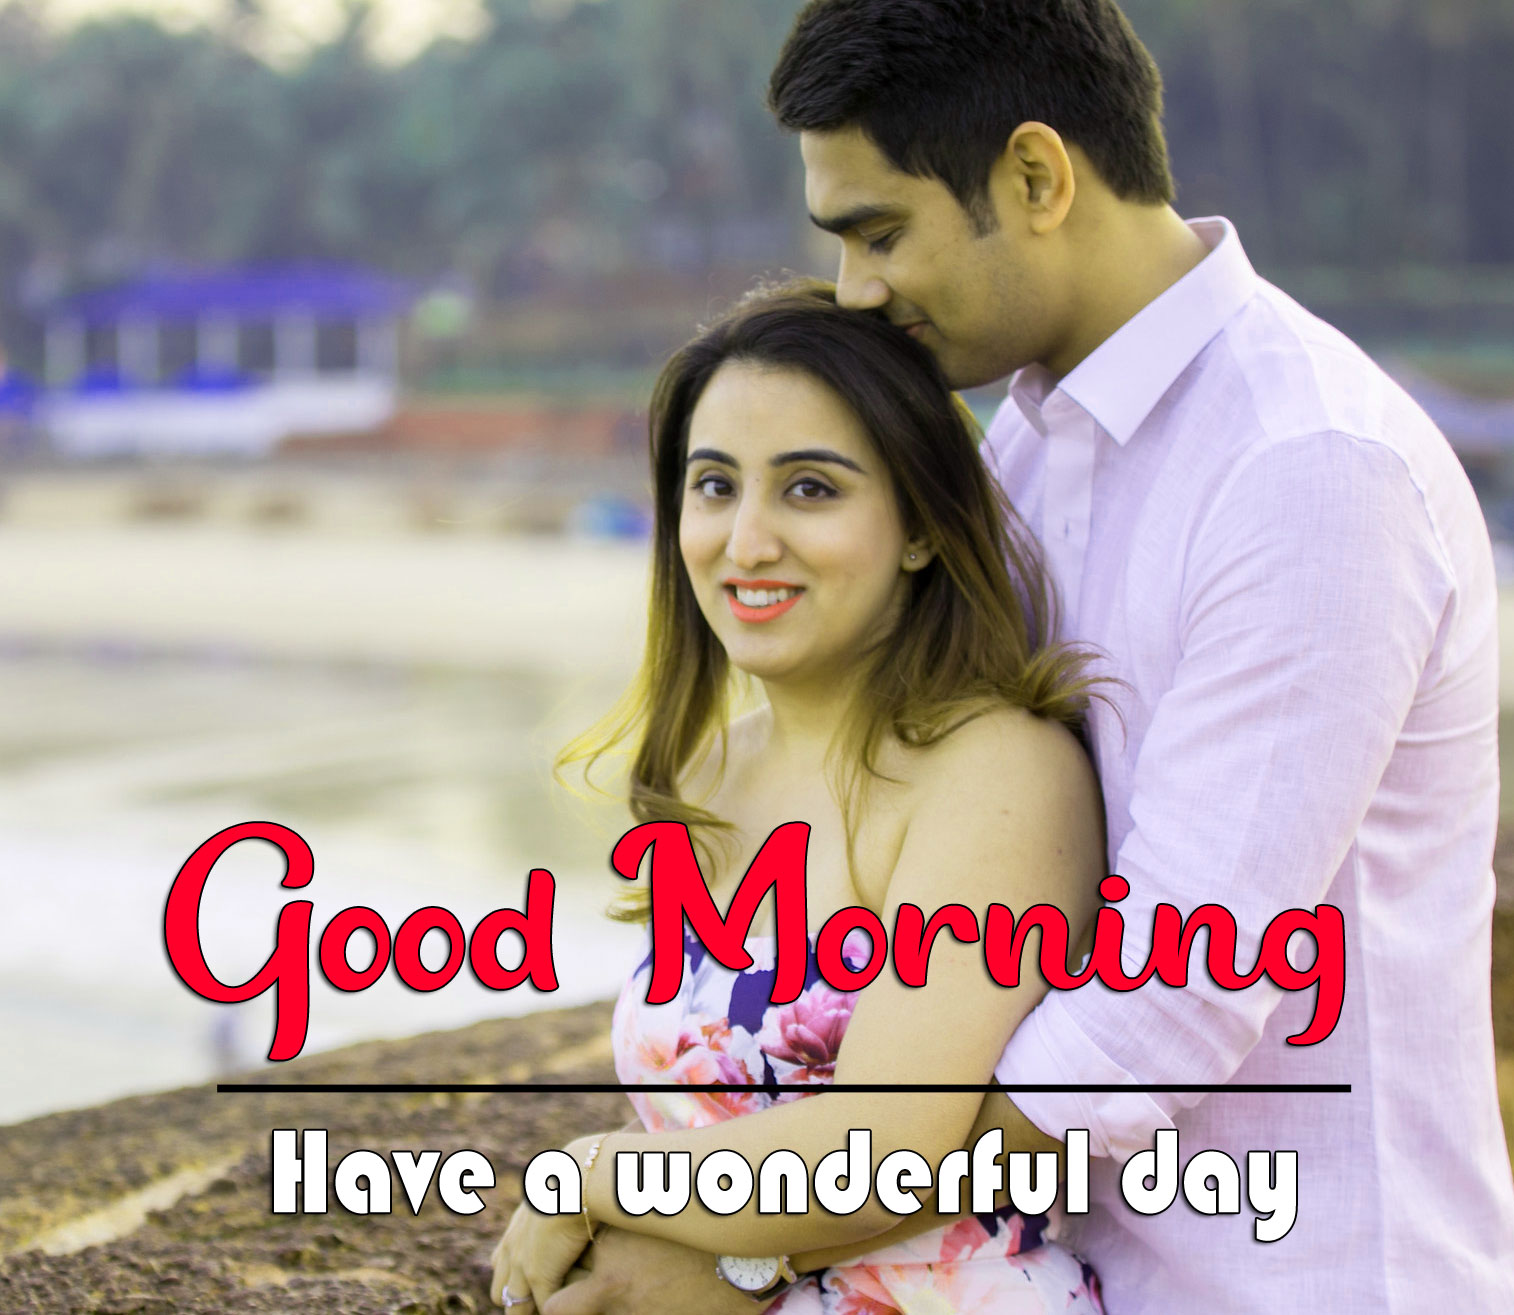 Latest New Good Morning Wishes Images 2021